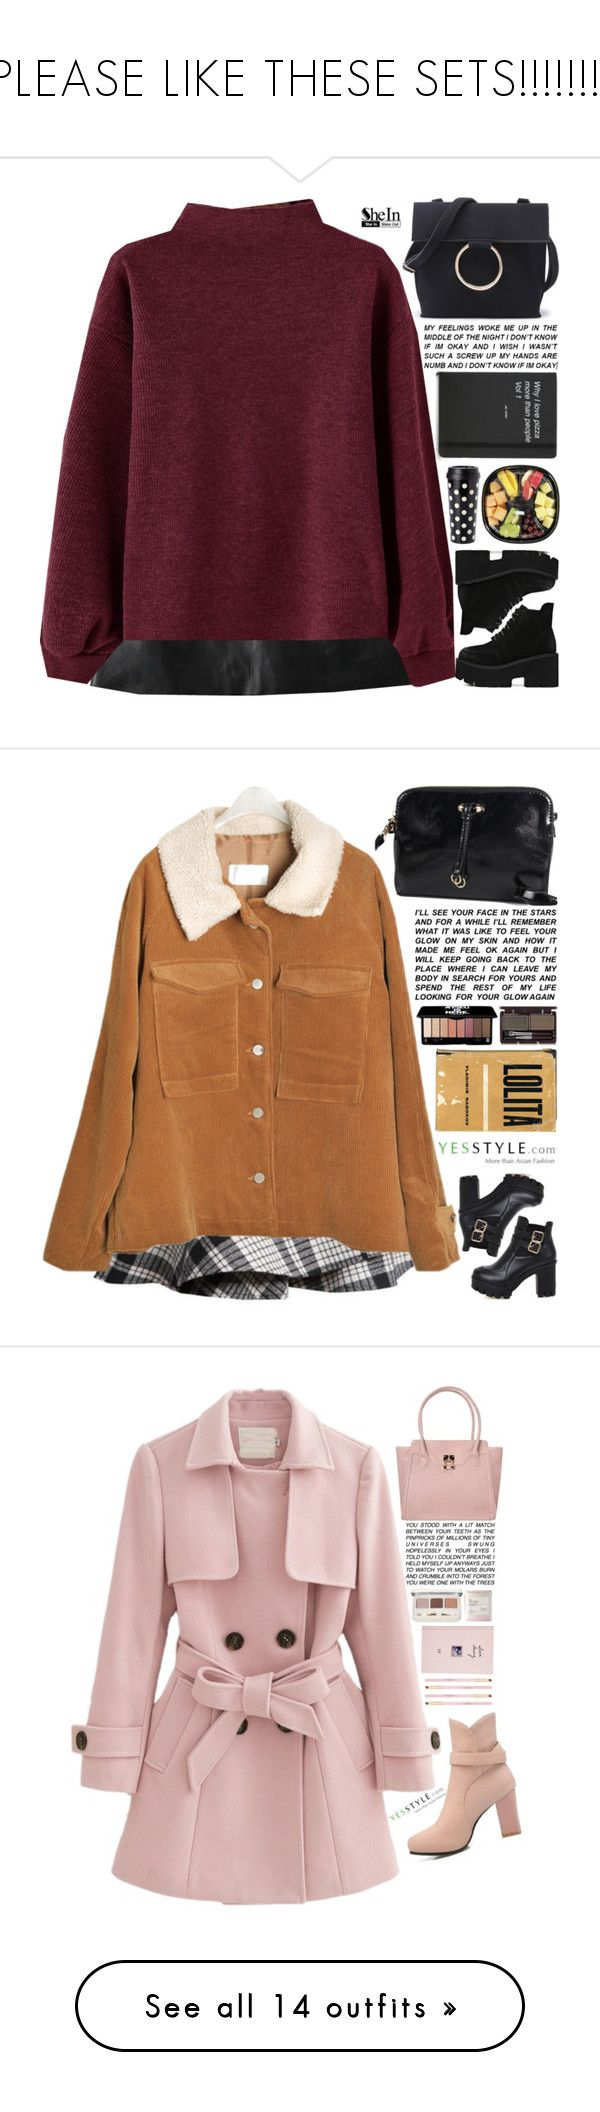 """""""PLEASE LIKE THESE SETS!!!!!!!!"""" by scarlett-morwenna ❤ liked on Polyvore featuring Kate Spade, vintage, Winter, yesstyle, ANS, ASOS, Etude House, Rough Fusion, WithChic and Muji"""